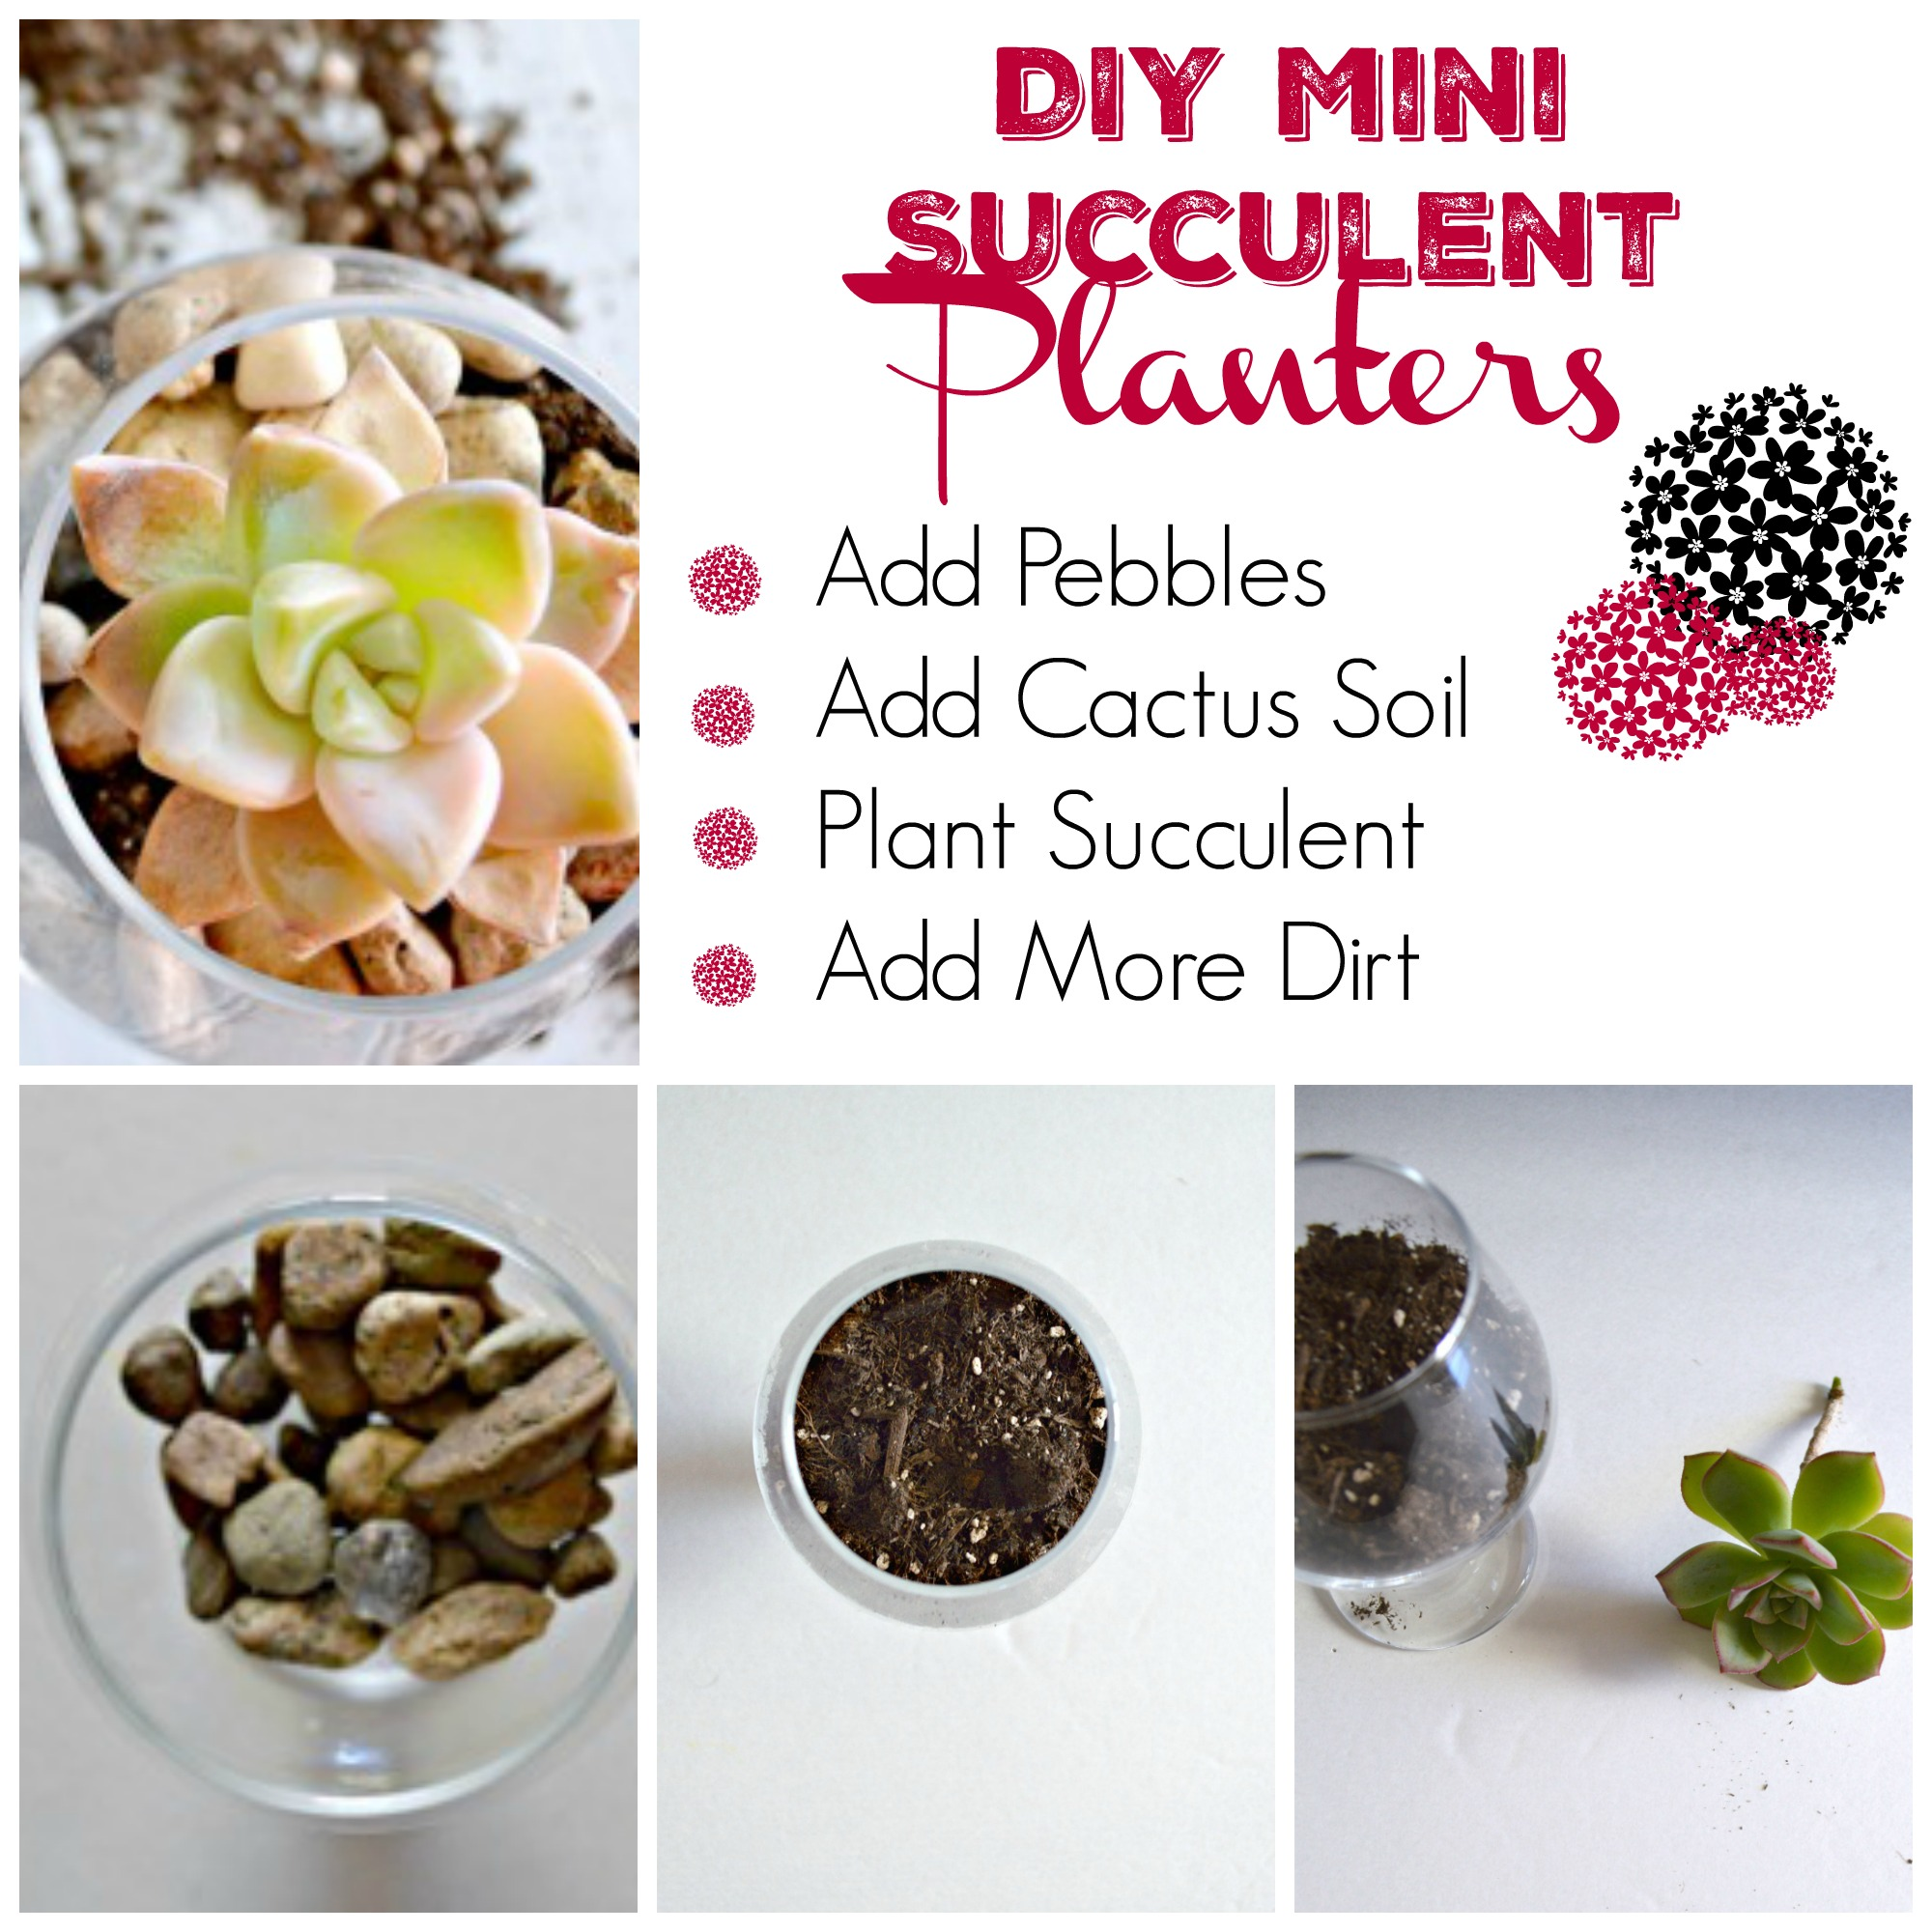 DIY Succulent Planters using a glass